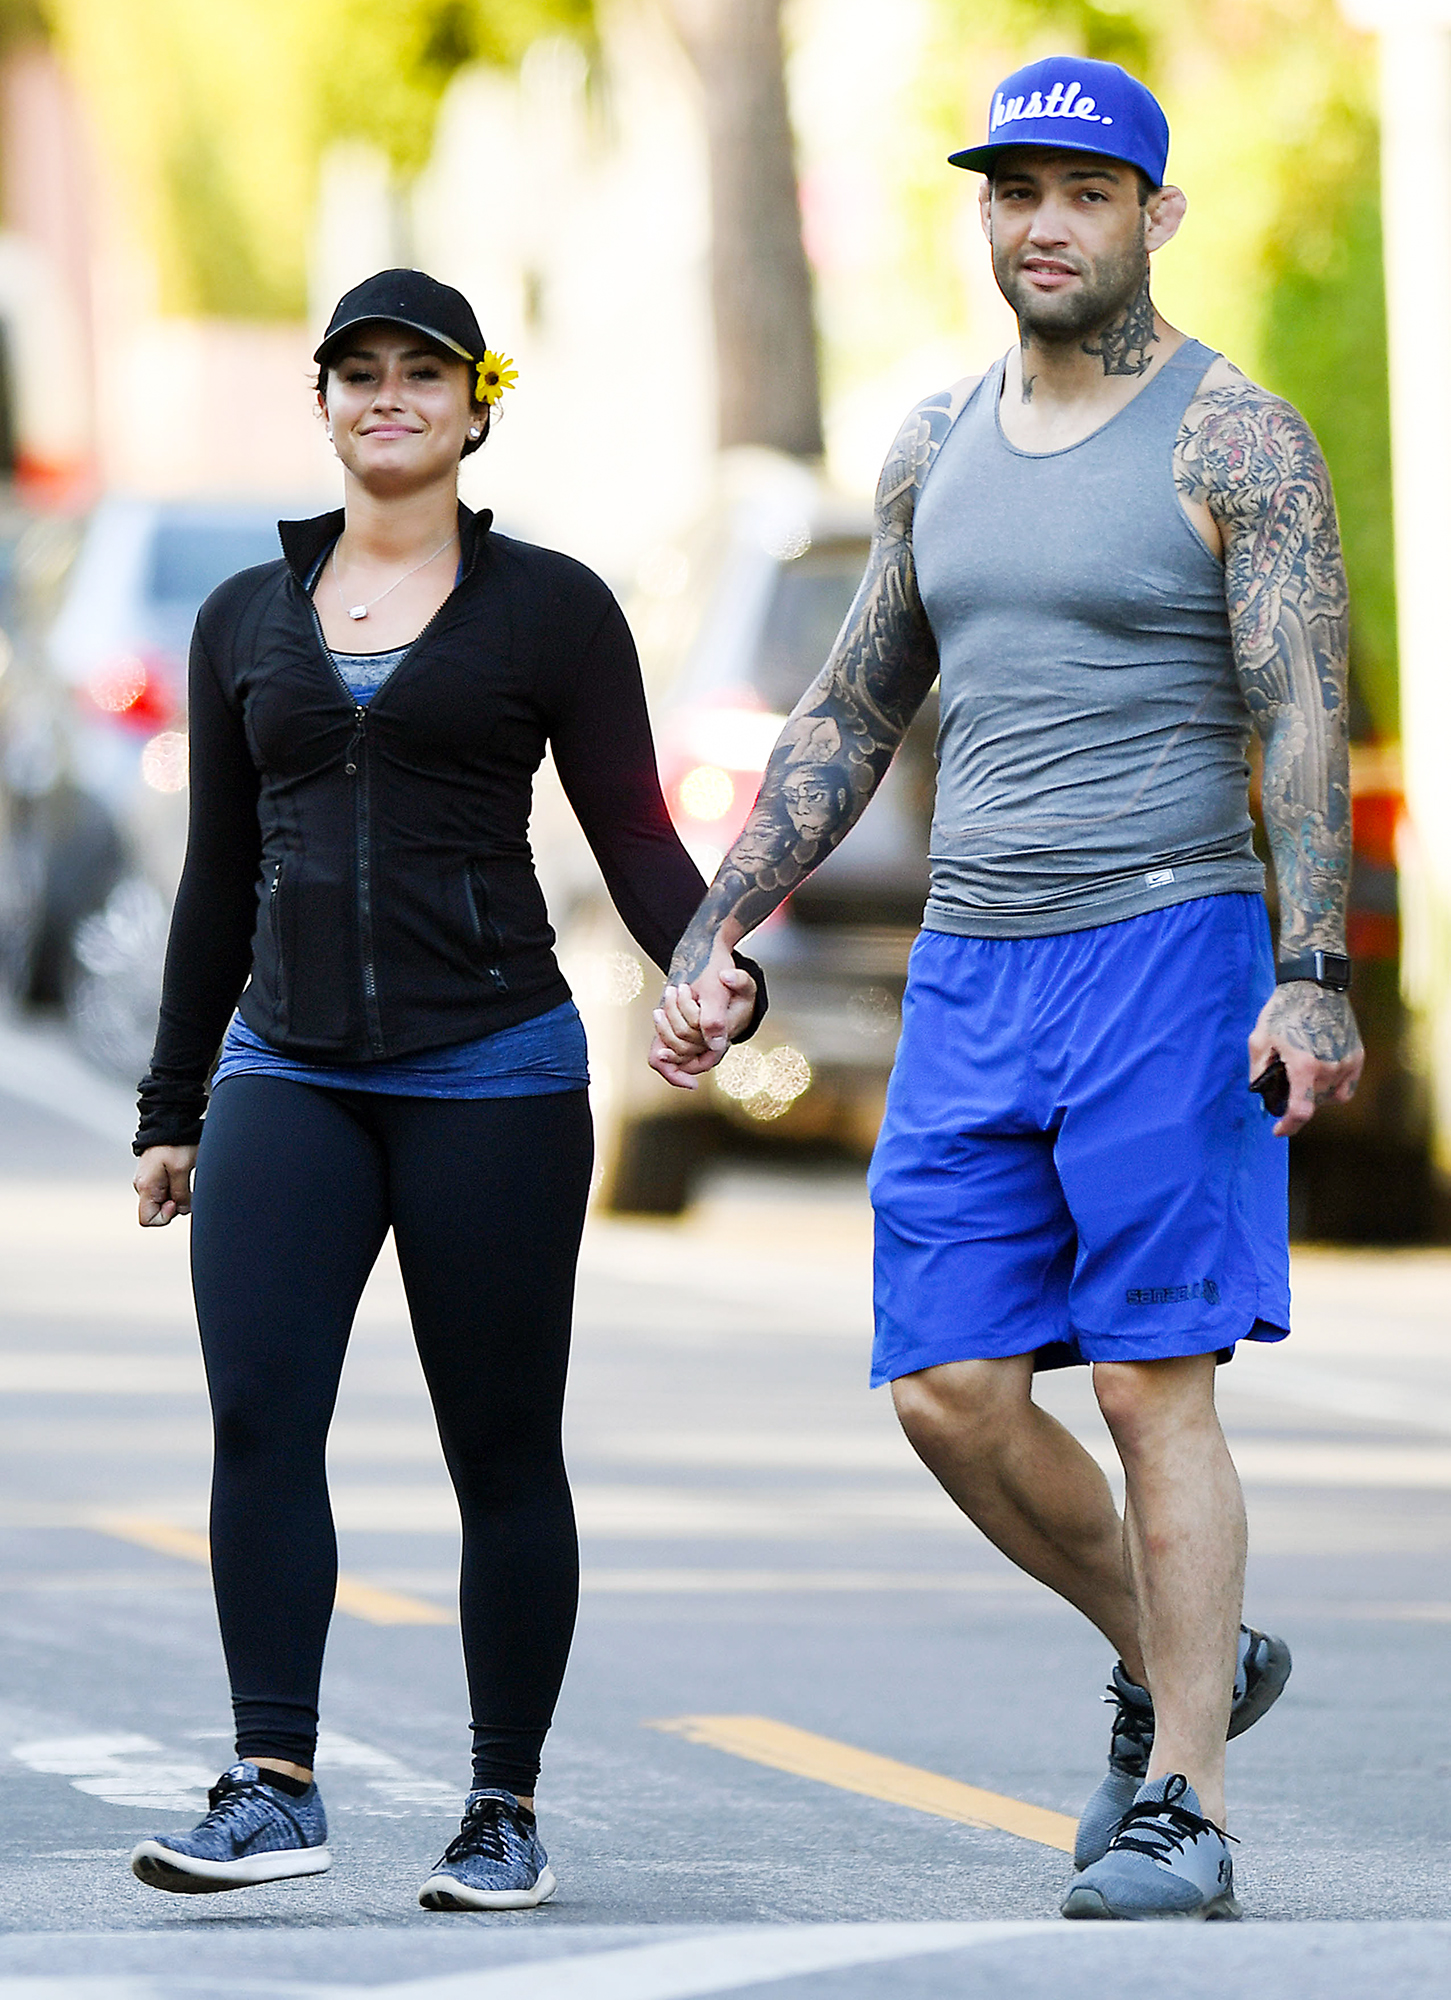 EXCLUSIVE: Demi Lovato holds hands with boyfriend Guilherme while on romantic hike together